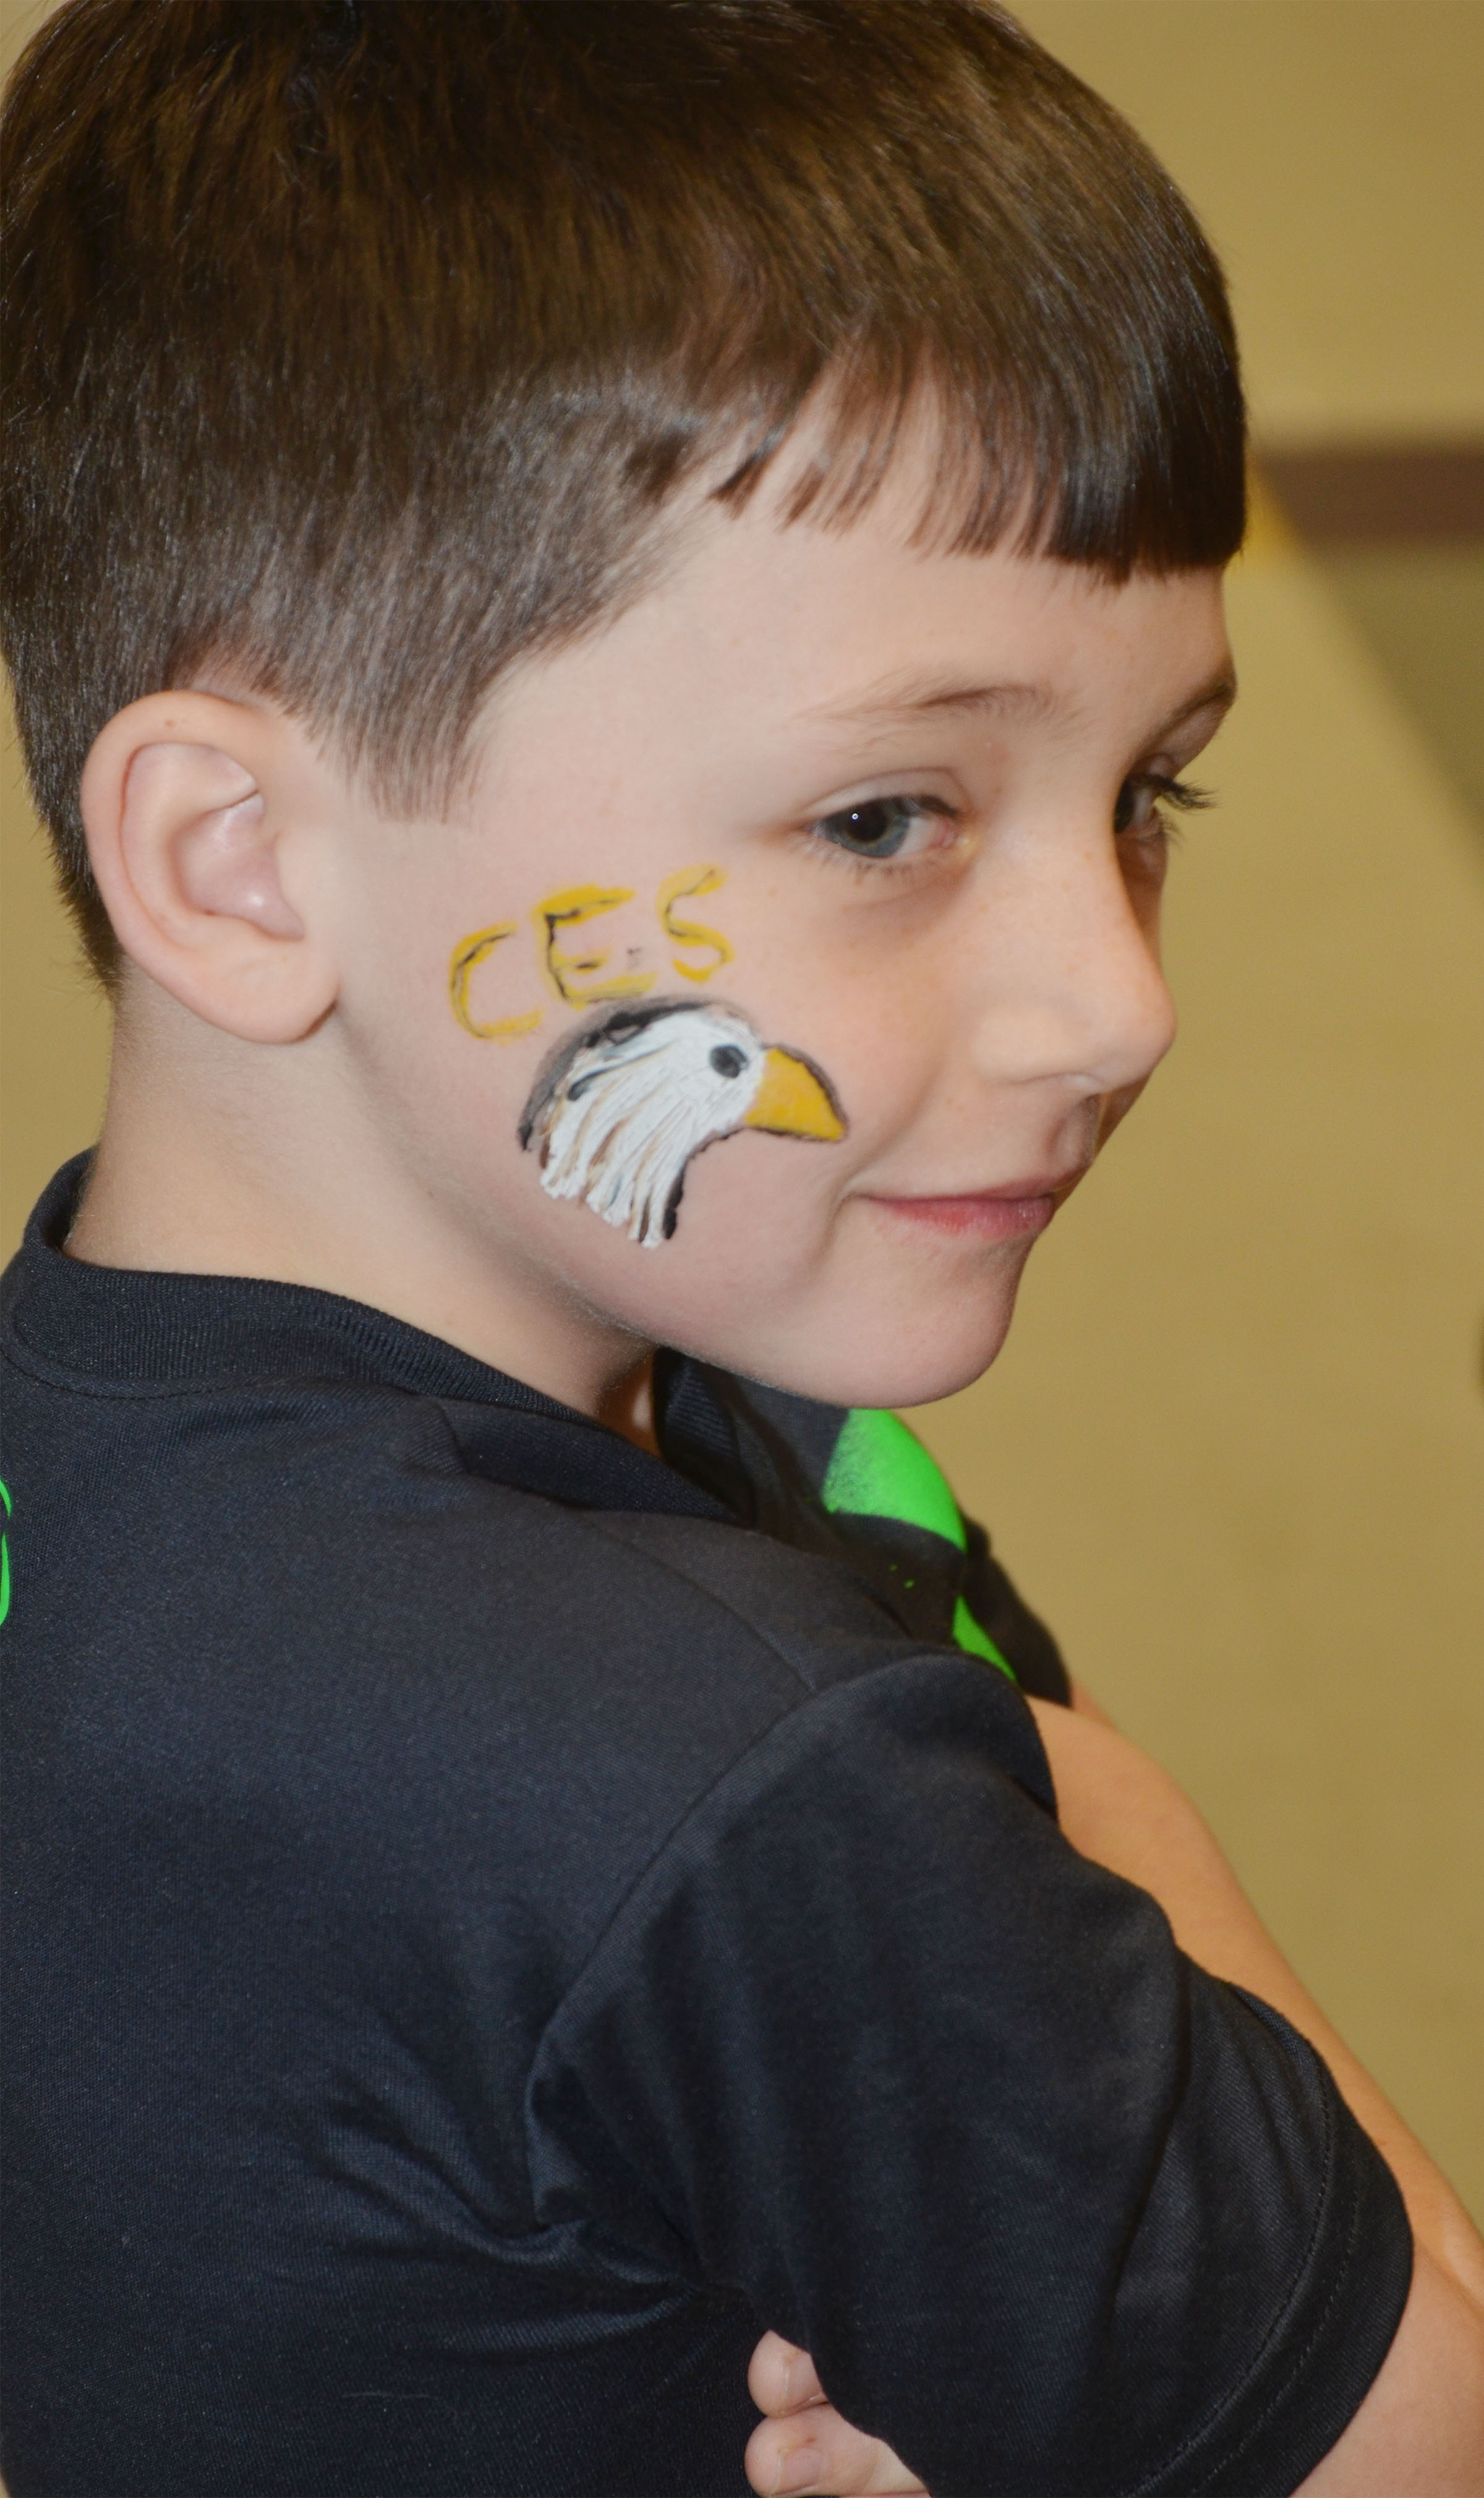 CES second-grader Codey Parks smiles after having an eagle painted on his cheek.